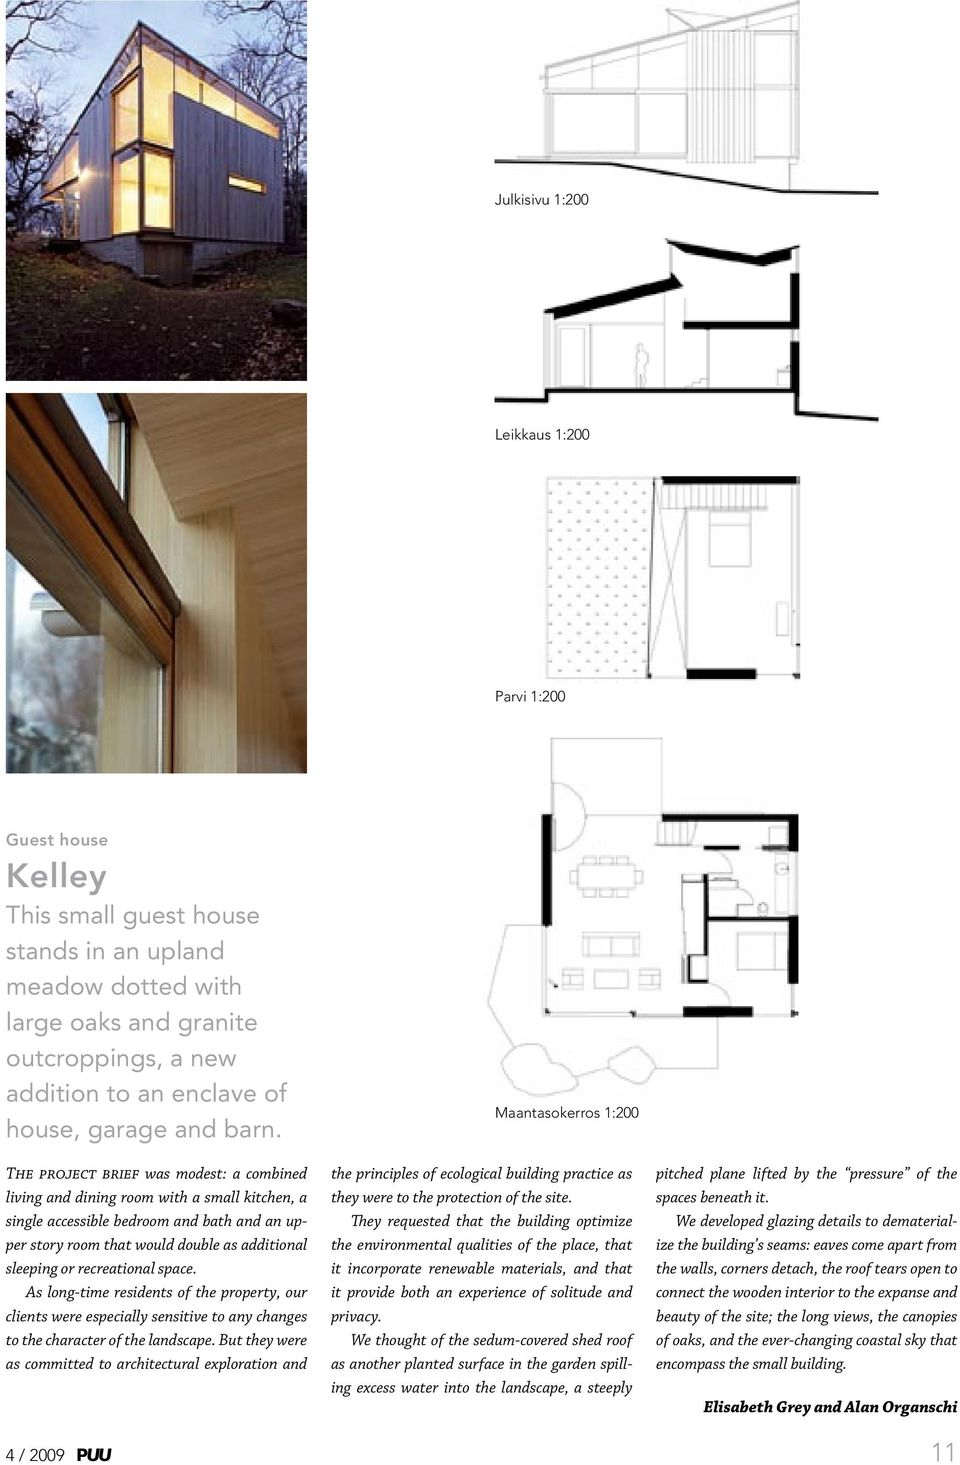 The project brief was modest: a combined living and dining room with a small kitchen, a single accessible bedroom and bath and an upper story room that would double as additional sleeping or